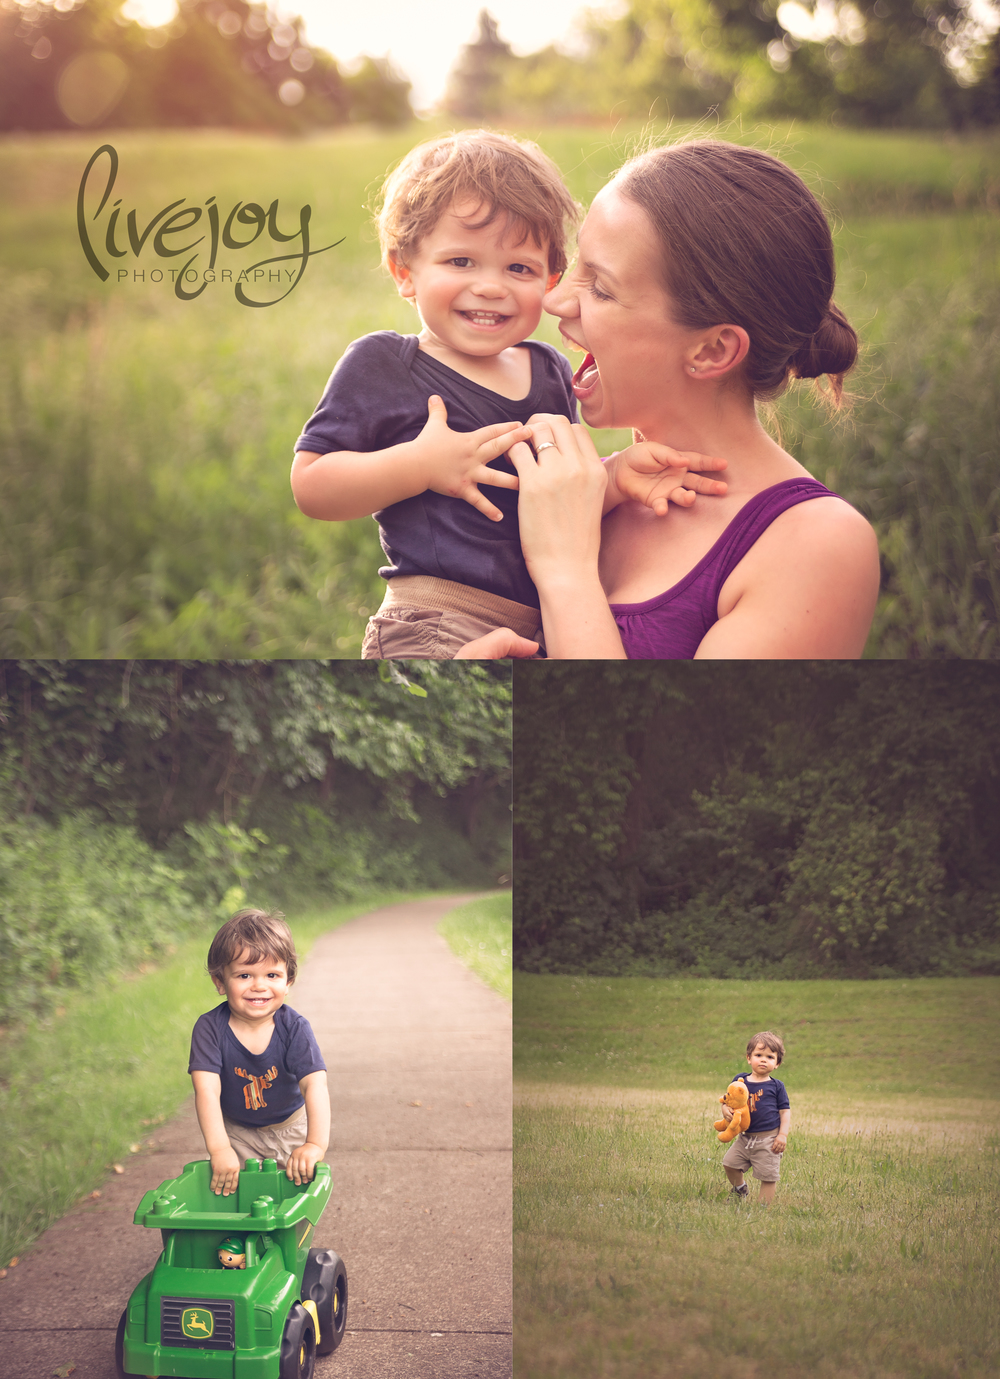 Baby Photography | Oregon | LiveJoy Photography